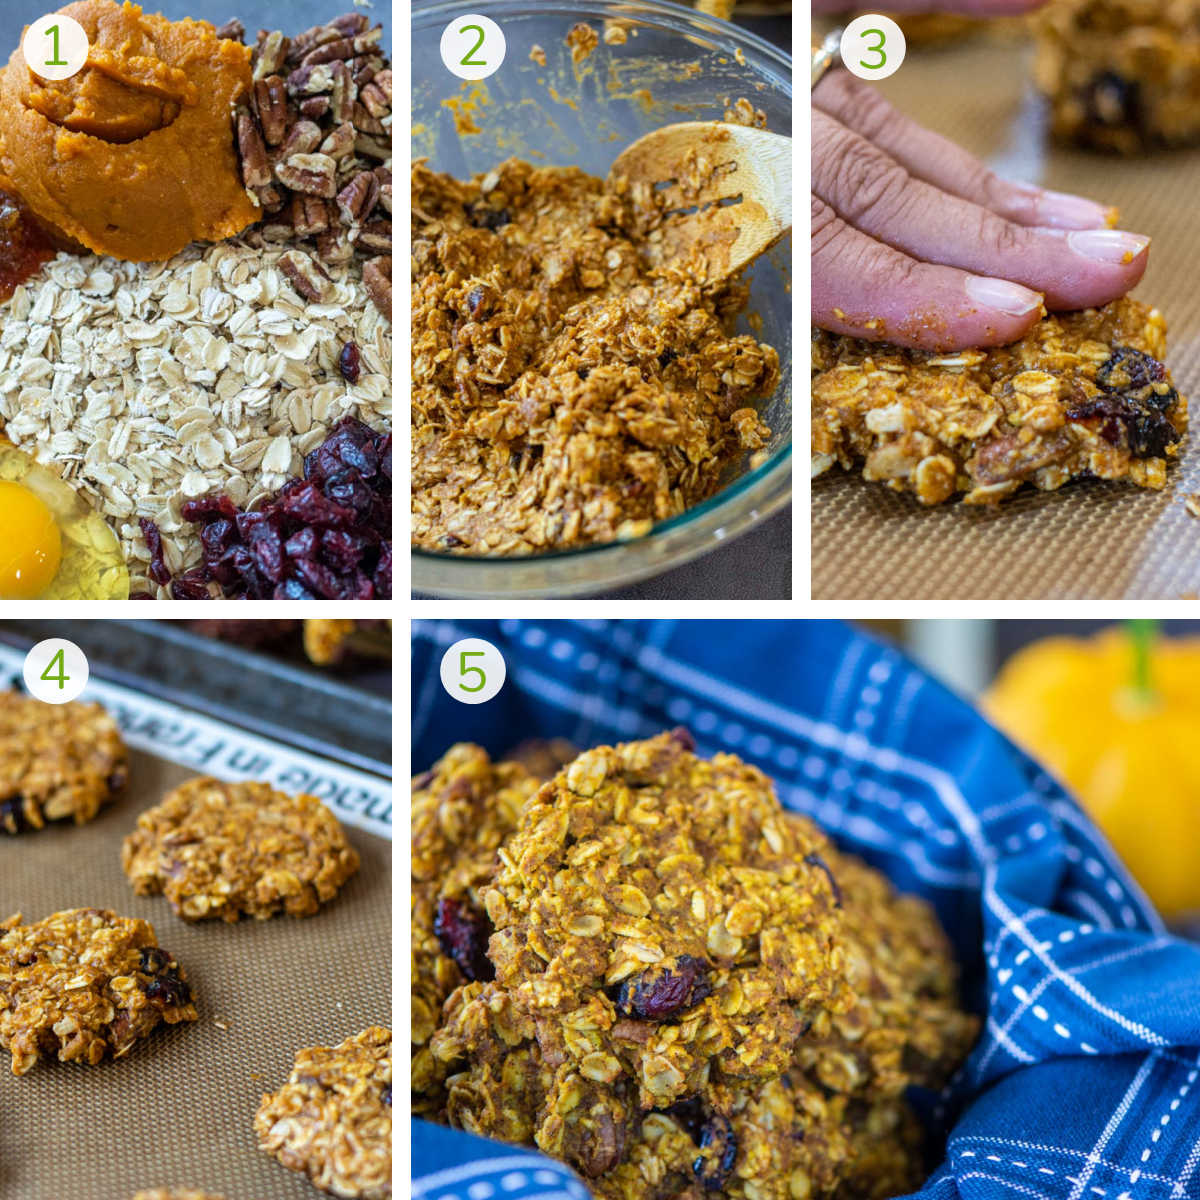 several process photos showing combining the ingredients, forming them into cookies, and baking.